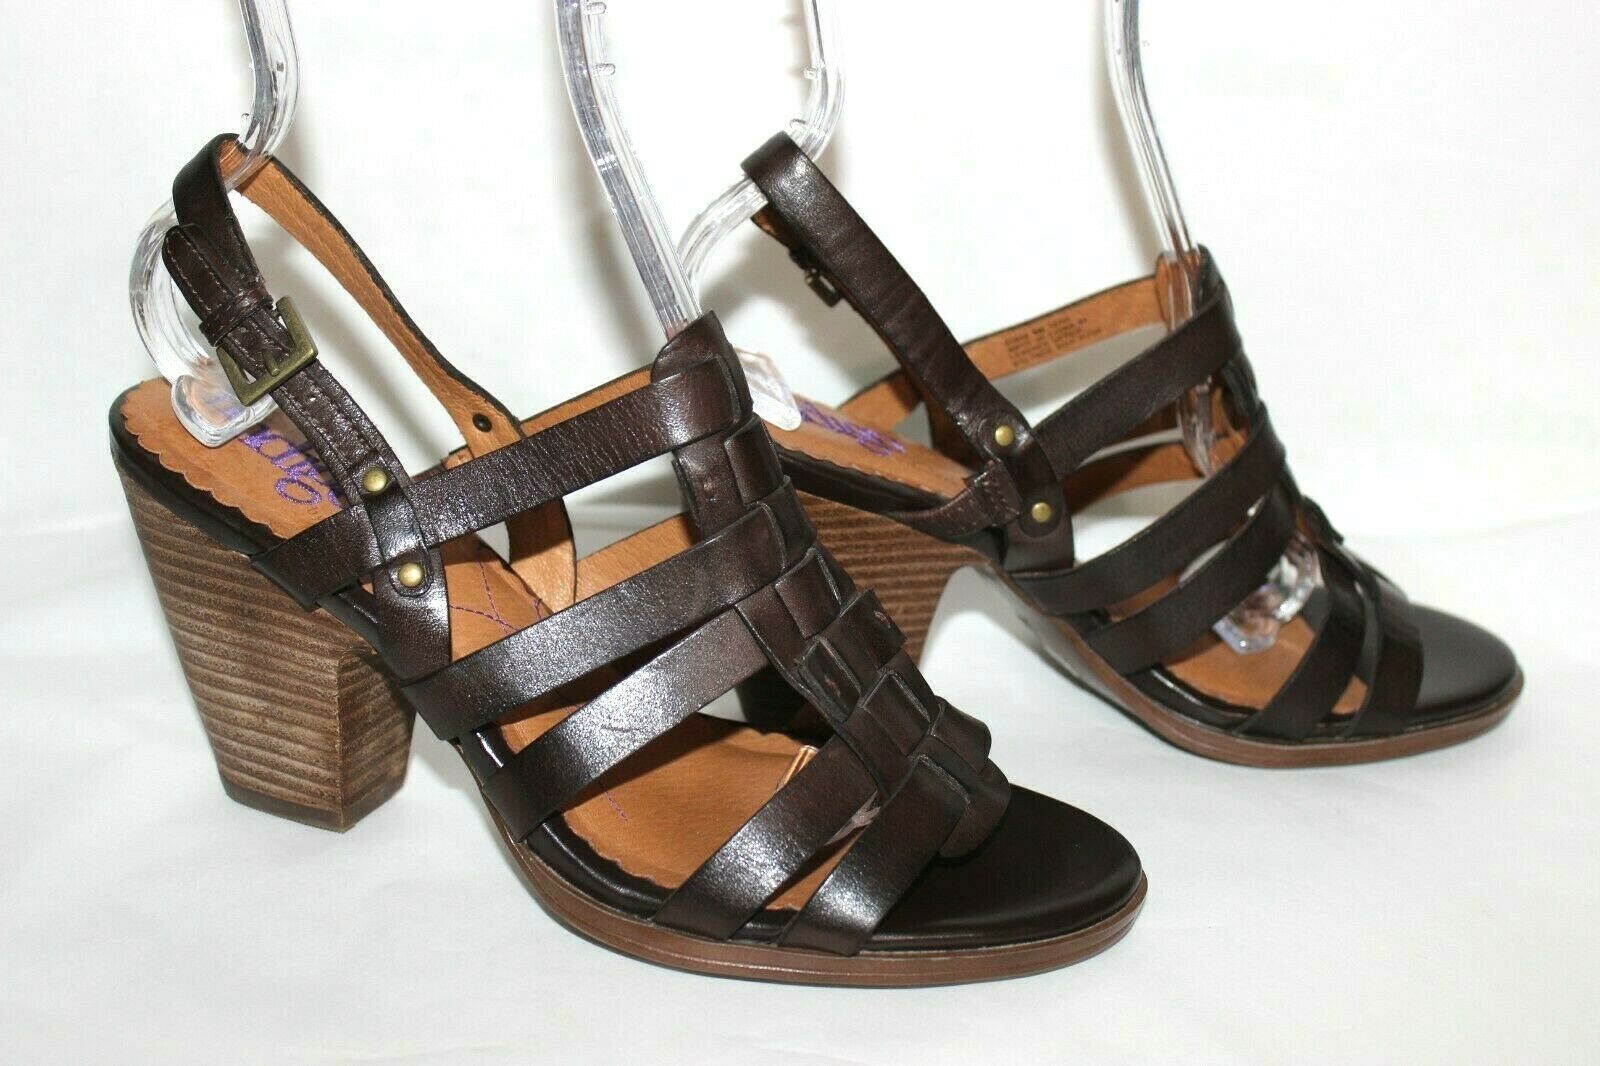 ✿ INDIGO by Clarks Woven Strappy Slingback Heeled Sandals 8 M EXCELLENT! L@@K!26 image 5